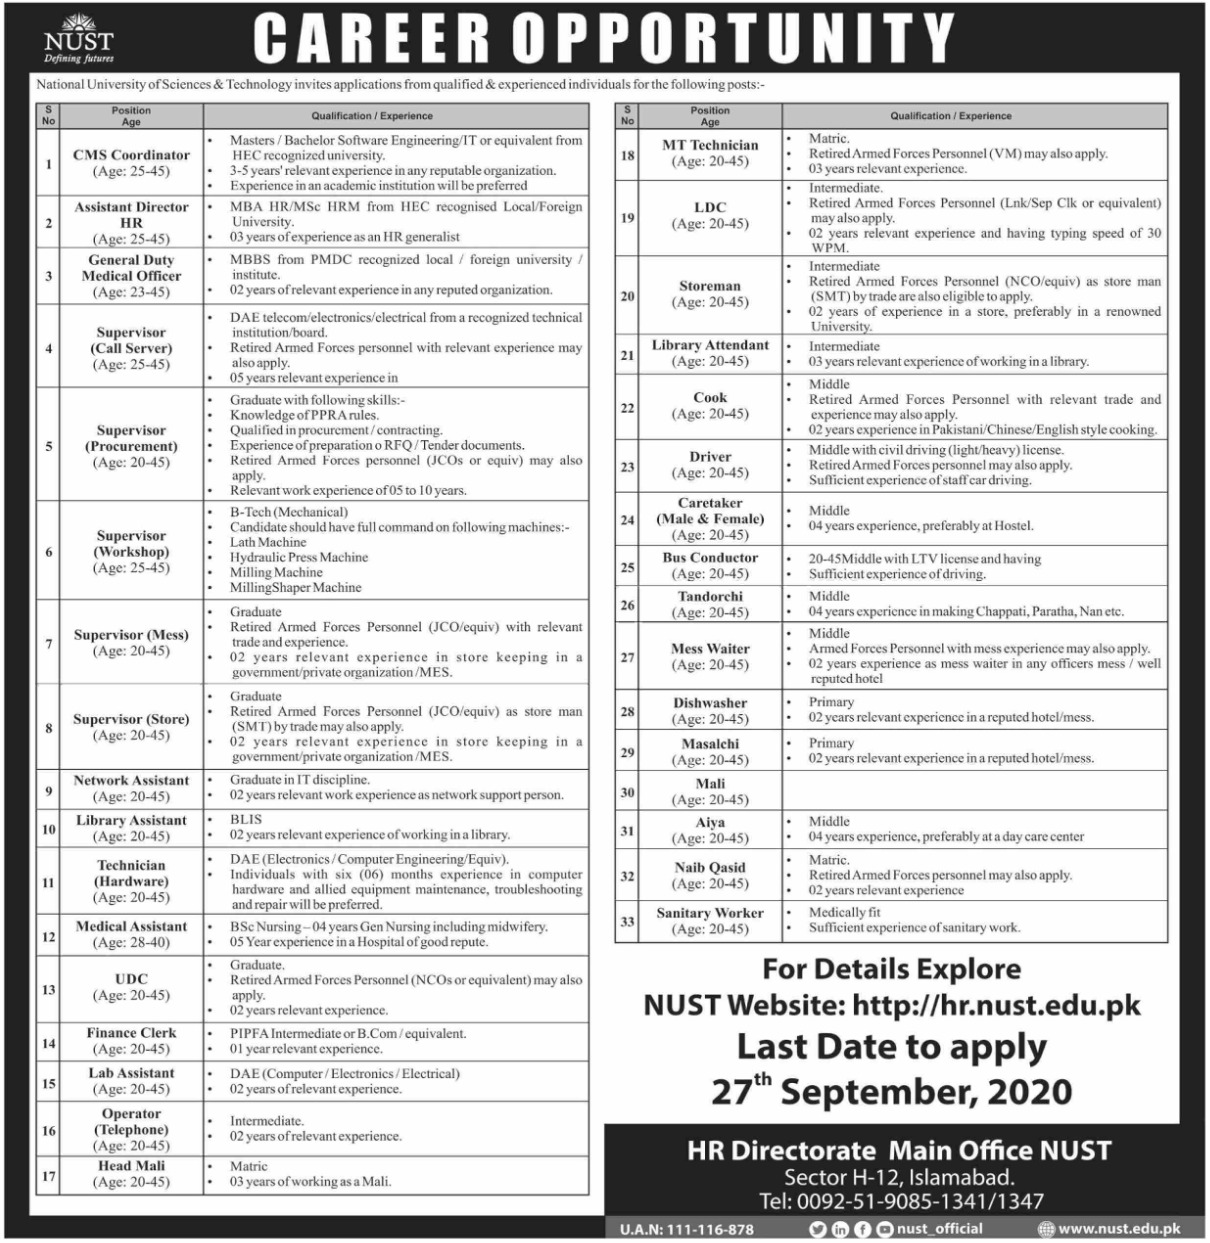 National University of Sciences & Technology NUST Jobs September 2020